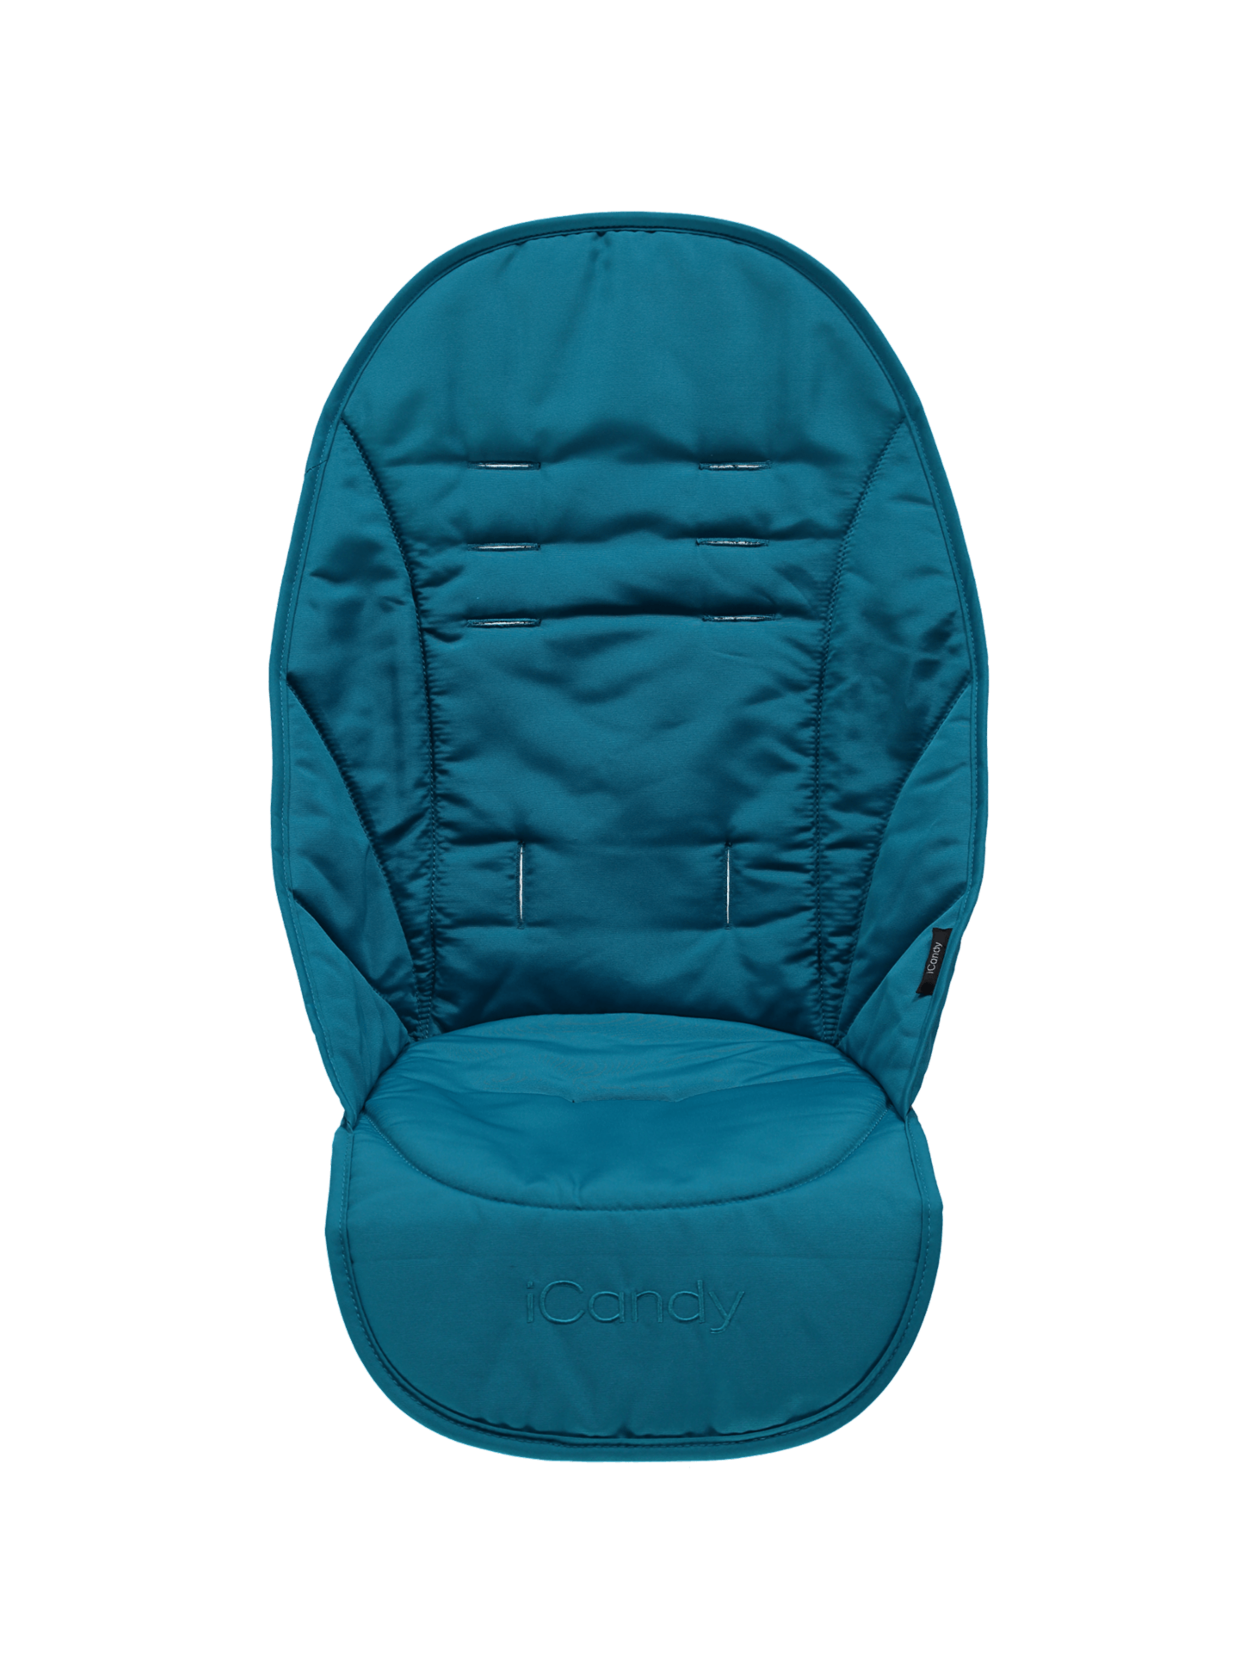 Strawberry2 Seat Liner - Pacific